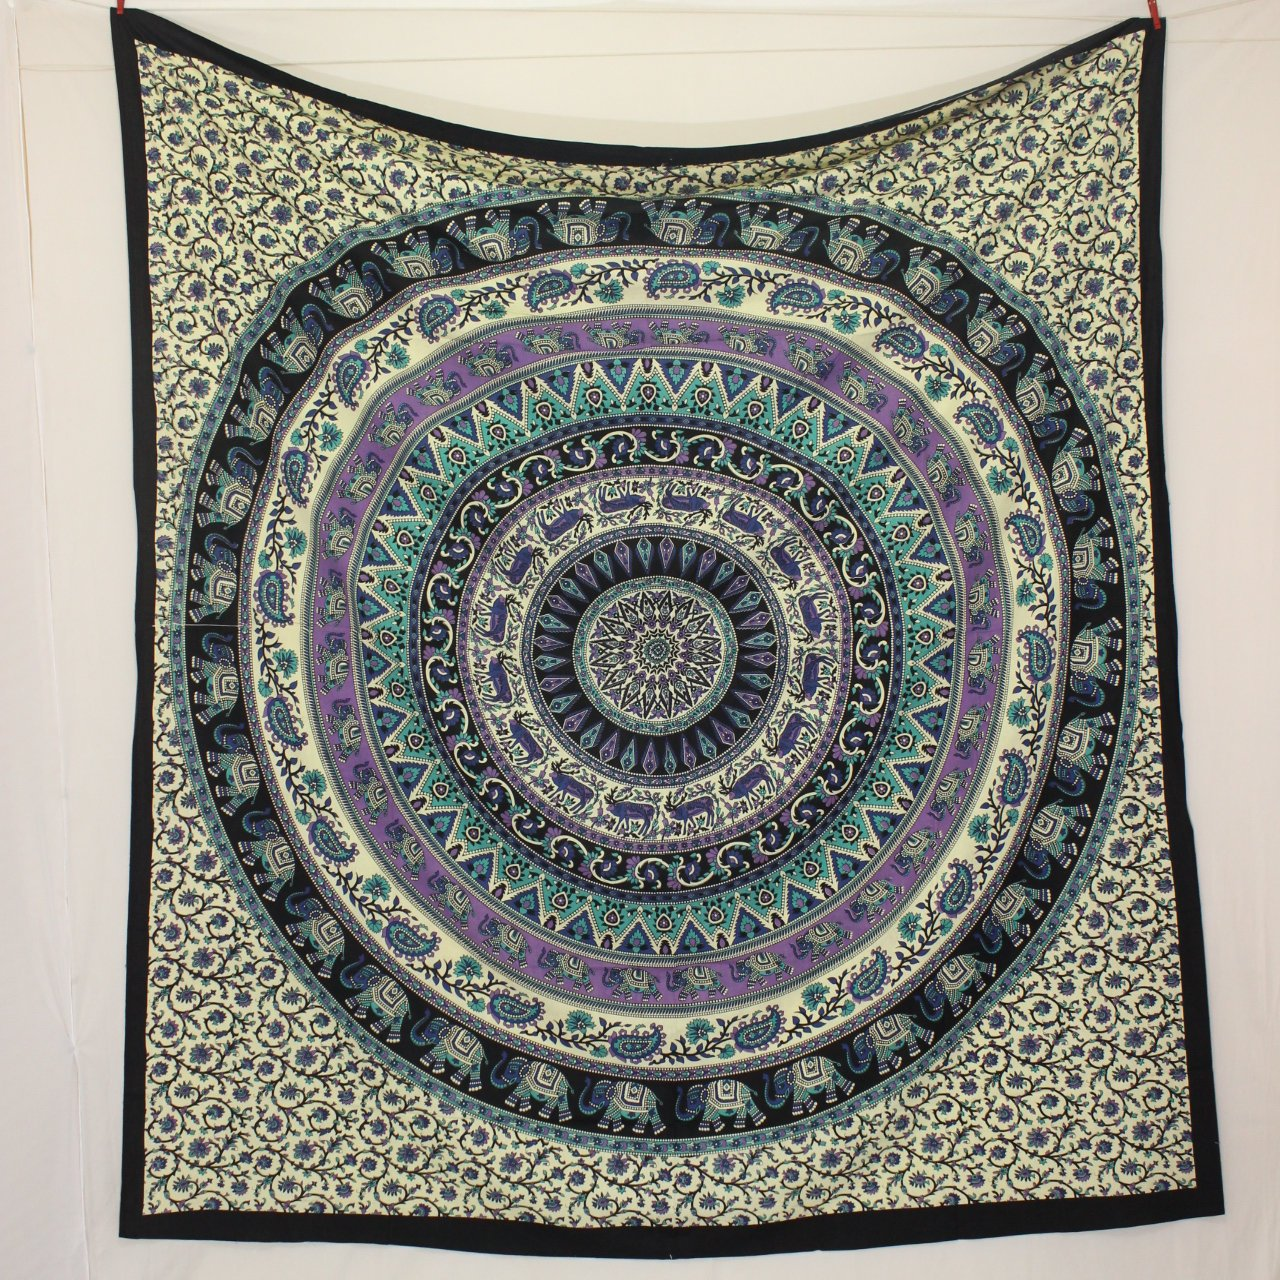 Circle Tapestry Wall Hanging Elephant Tapestry Wall Tapestry Mandala Tapestry Indian Tapestry Bohemian Tapestry Hippie boho tapestry decor